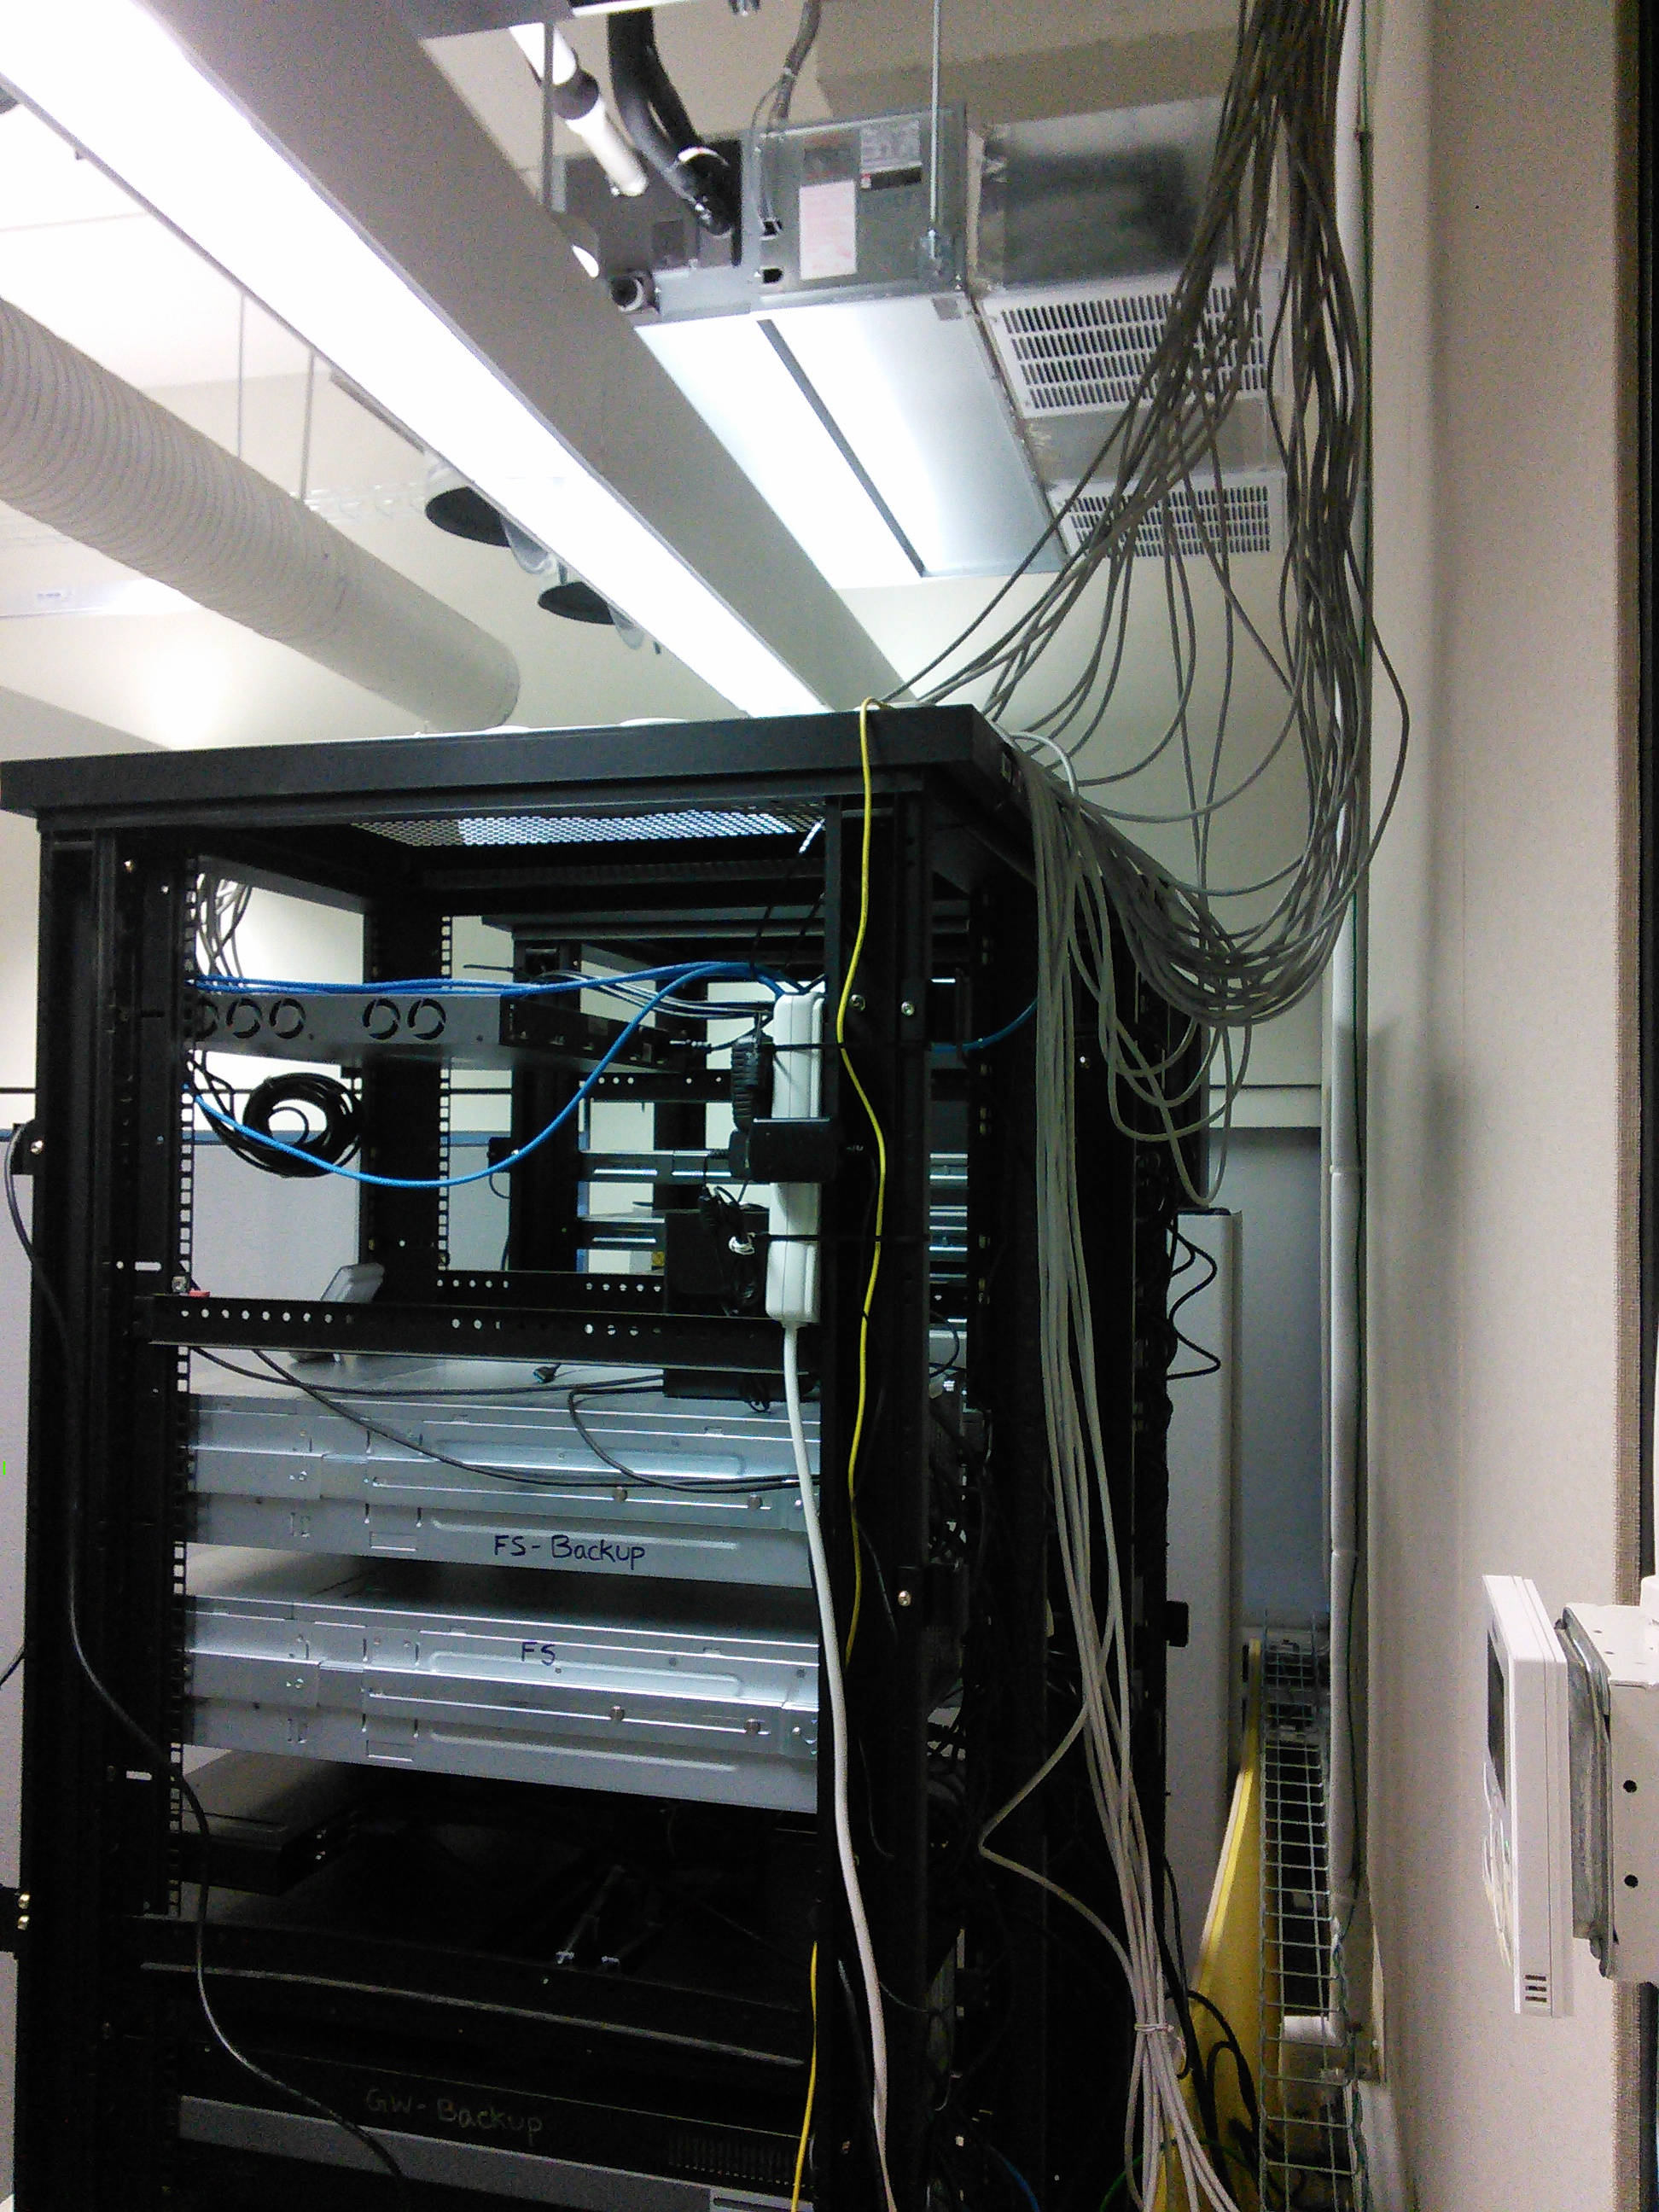 CC434_server_racks_web_version.jpg